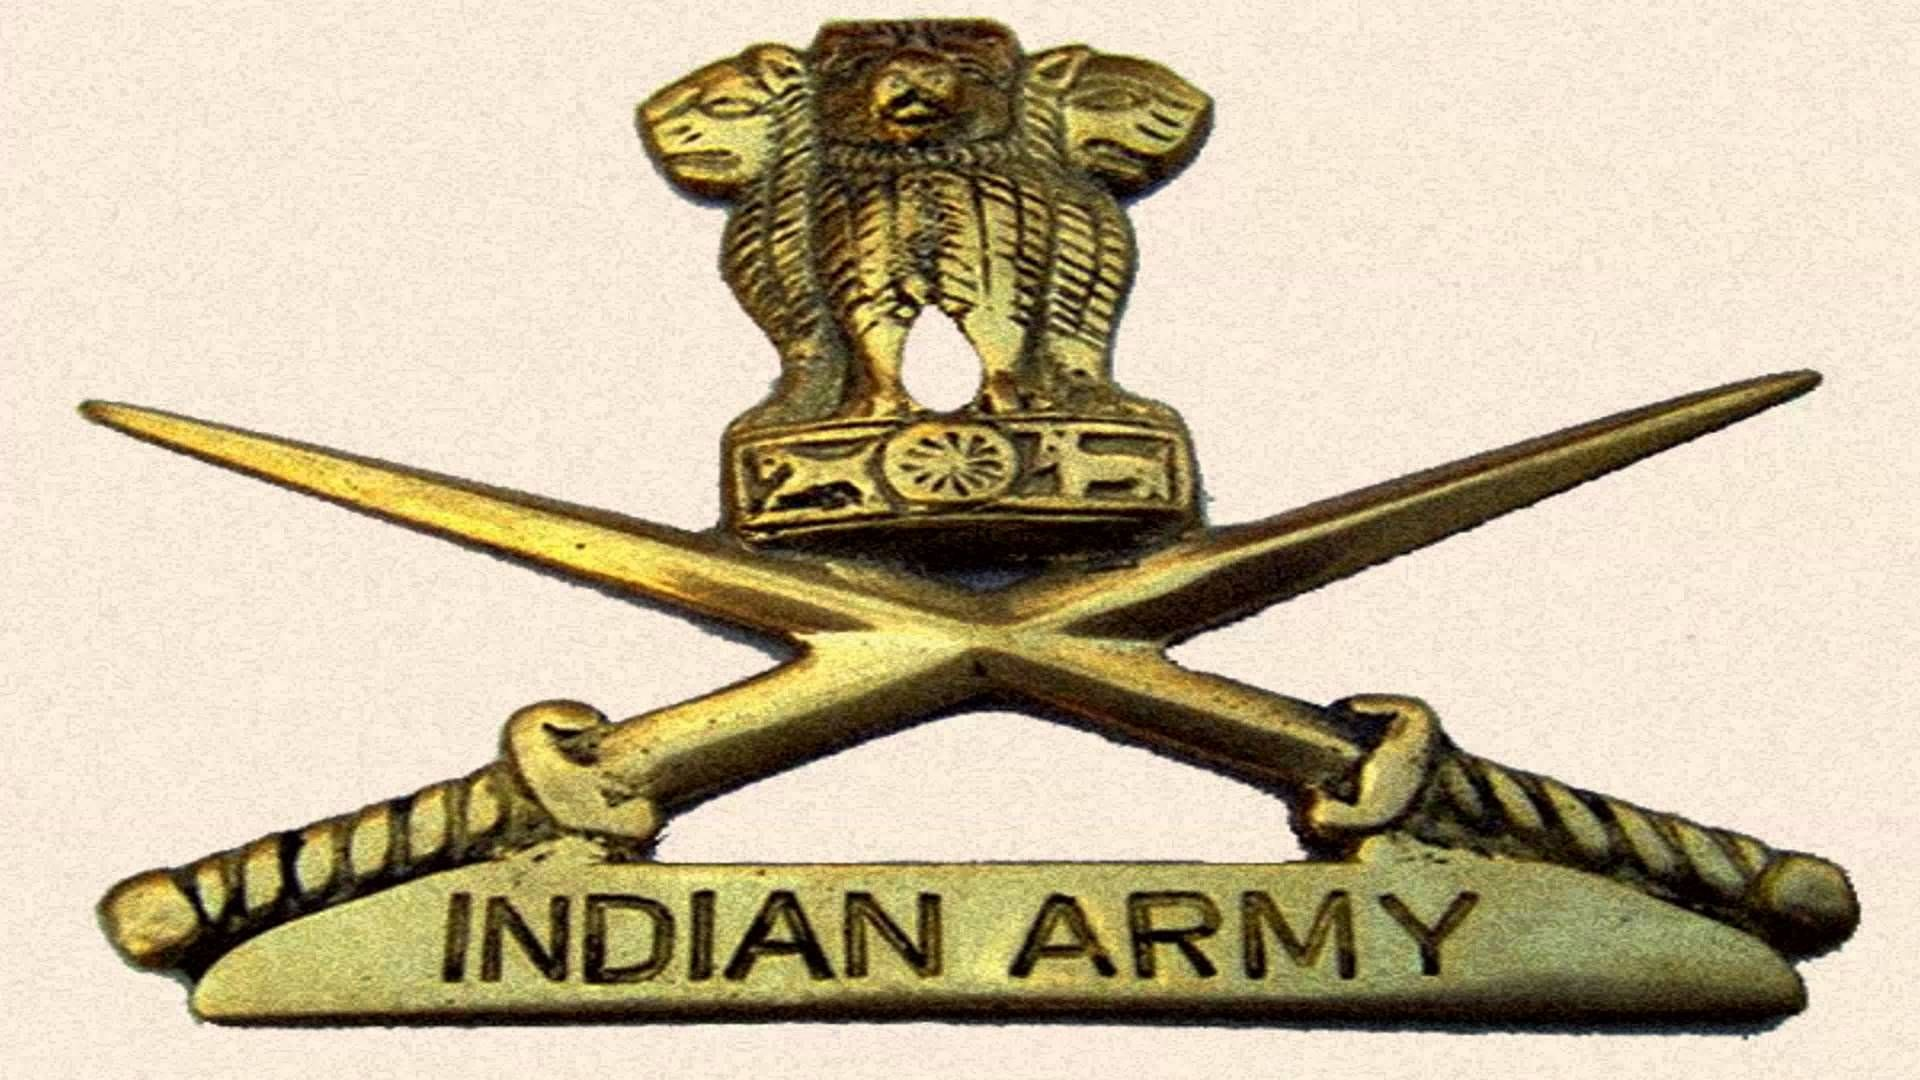 Indian Army Marching Song Kadam Kadam Official Indian Army Recruitment Army Recruitment Indian Army Wallpapers